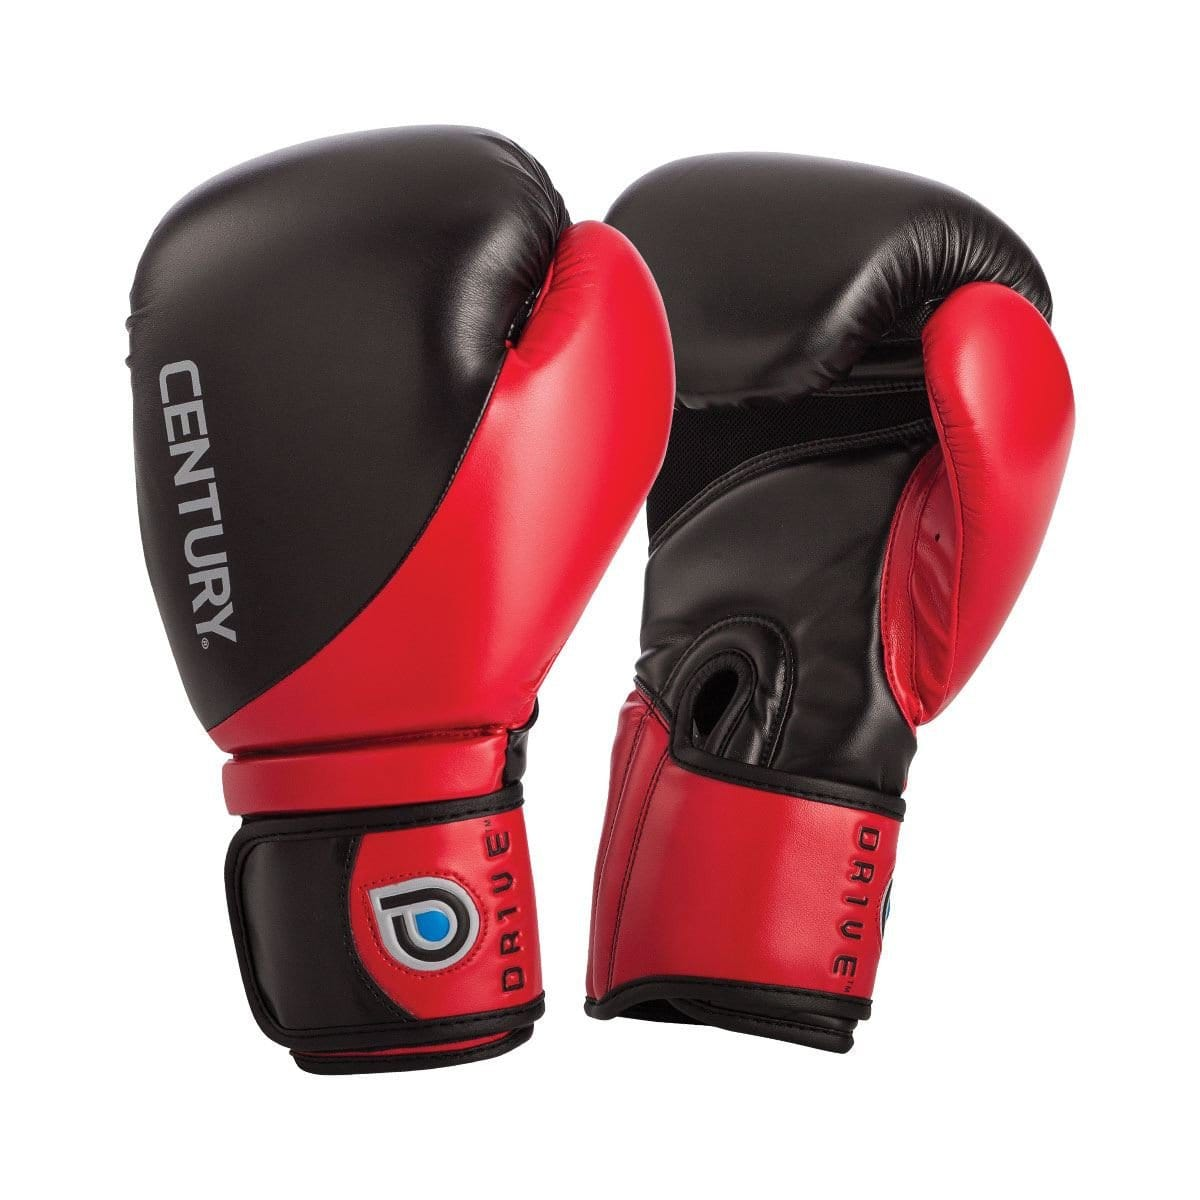 Drive Boxing Gloves c141003P - BlackBeltShop